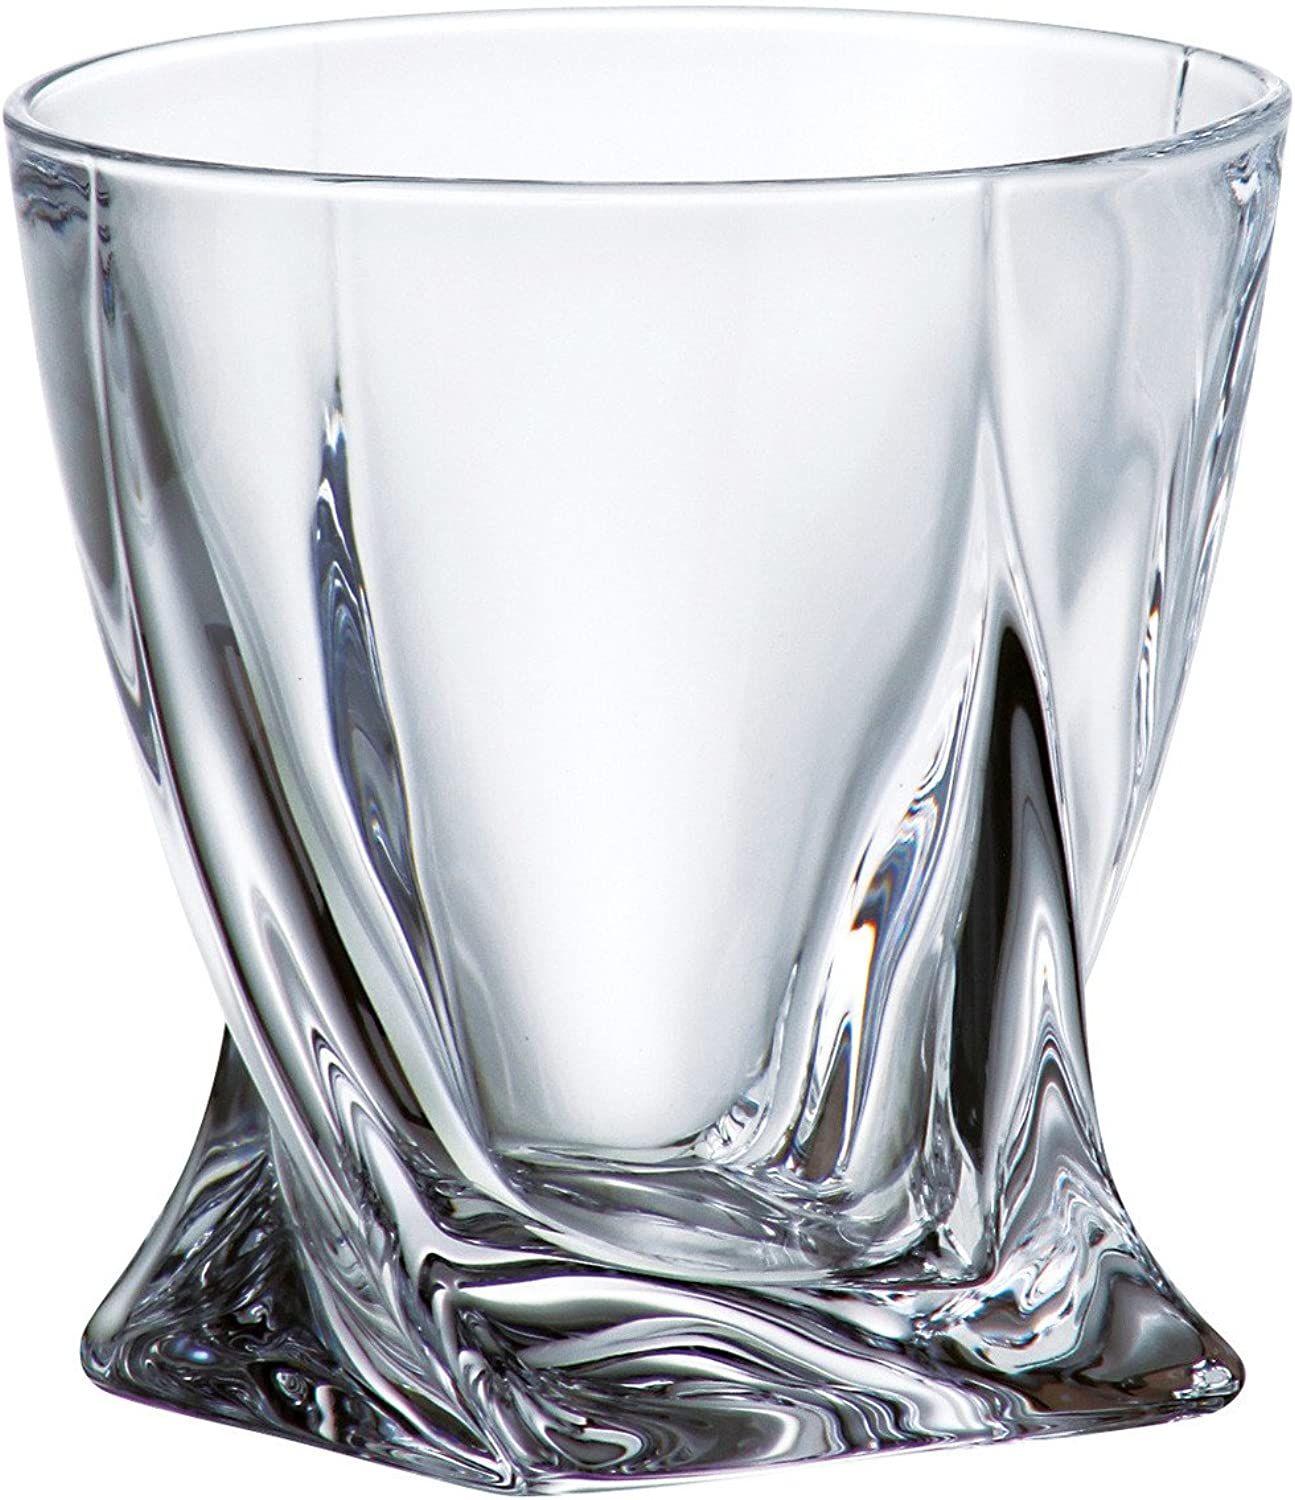 Barski Glass- Lead Free Crystalline - Shot Glasses - 1.85 oz. - Made in Europe - Set Of 6